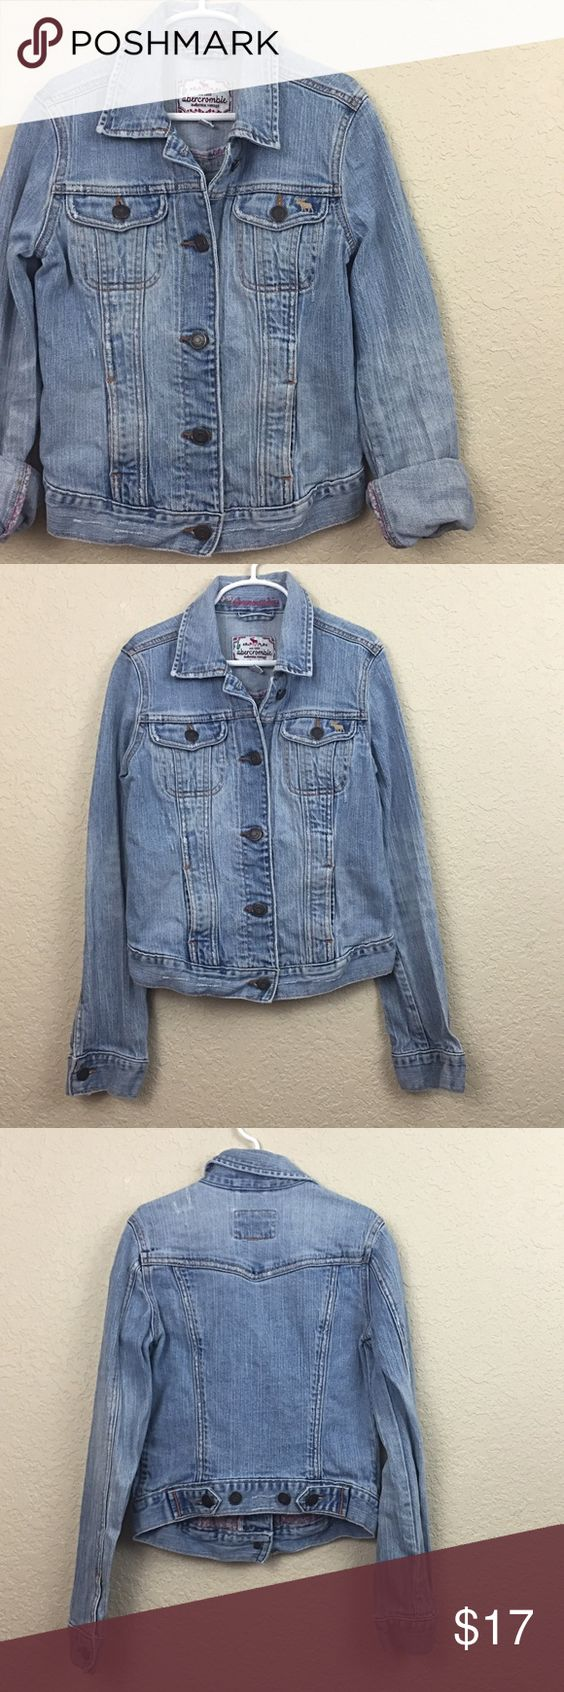 Abercrombie girls jacket Abercrombie kids girls jeans jacket no damages size small abercrombie kids Jackets & Coats Jean Jackets